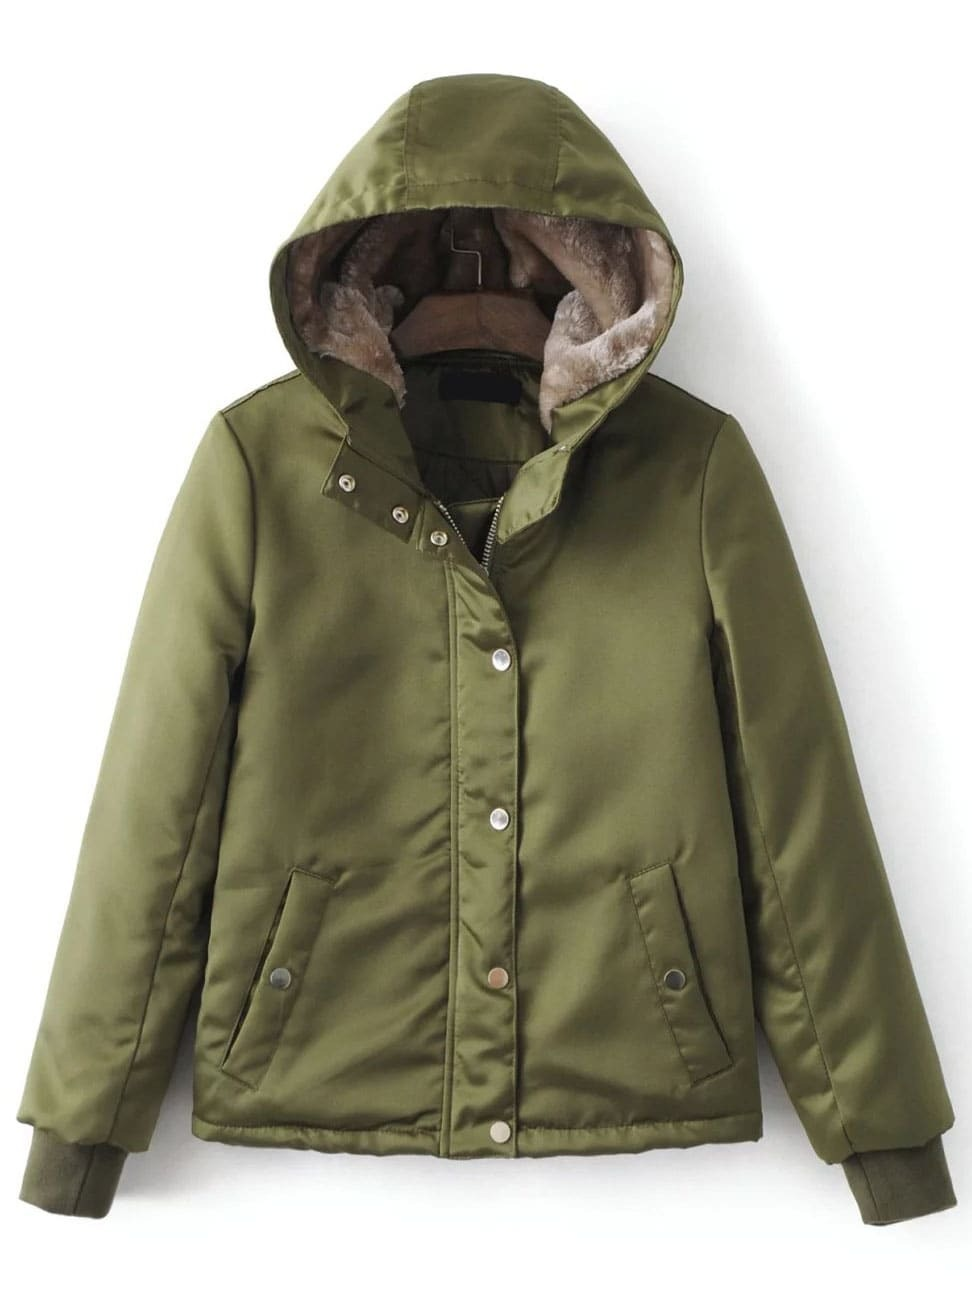 Army Green Hidden Zip Hooded Padded JacketArmy Green Hidden Zip Hooded Padded Jacket<br><br>color: Green<br>size: L,M,S